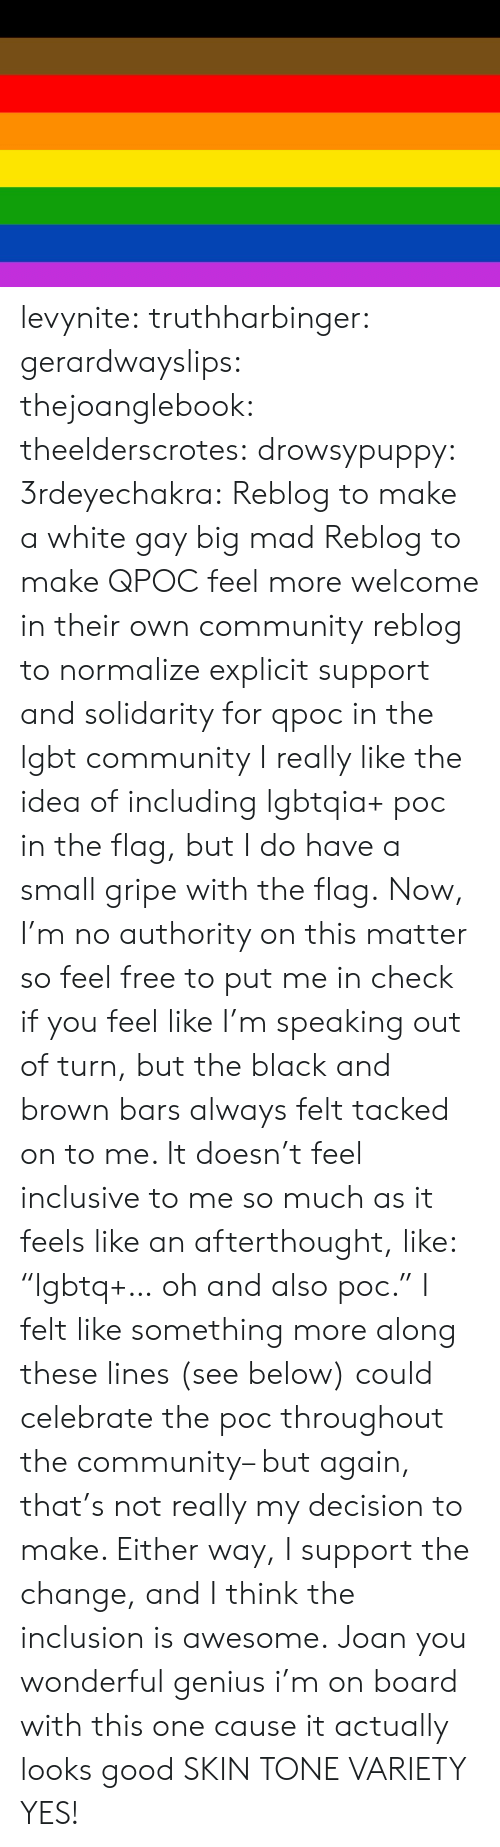 """inclusion: levynite:  truthharbinger:  gerardwayslips:  thejoanglebook:  theelderscrotes:  drowsypuppy:  3rdeyechakra: Reblog to make a white gay big mad  Reblog to make QPOC feel more welcome in their own community  reblog to normalize explicit support and solidarity for qpoc in the lgbt community   I really like the idea of including lgbtqia+ poc in the flag, but I do have a small gripe with the flag.  Now, I'm no authority on this matter so feel free to put me in check if you feel like I'm speaking out of turn, but the black and brown bars always felt tacked on to me. It doesn't feel inclusive to me so much as it feels like an afterthought, like: """"lgbtq+… oh and also poc."""" I felt like something more along these lines (see below) could celebrate the poc throughout the community– but again, that's not really my decision to make. Either way, I support the change, and I think the inclusion is awesome.    Joan you wonderful genius   i'm on board with this one cause it actually looks good  SKIN TONE VARIETY YES!"""